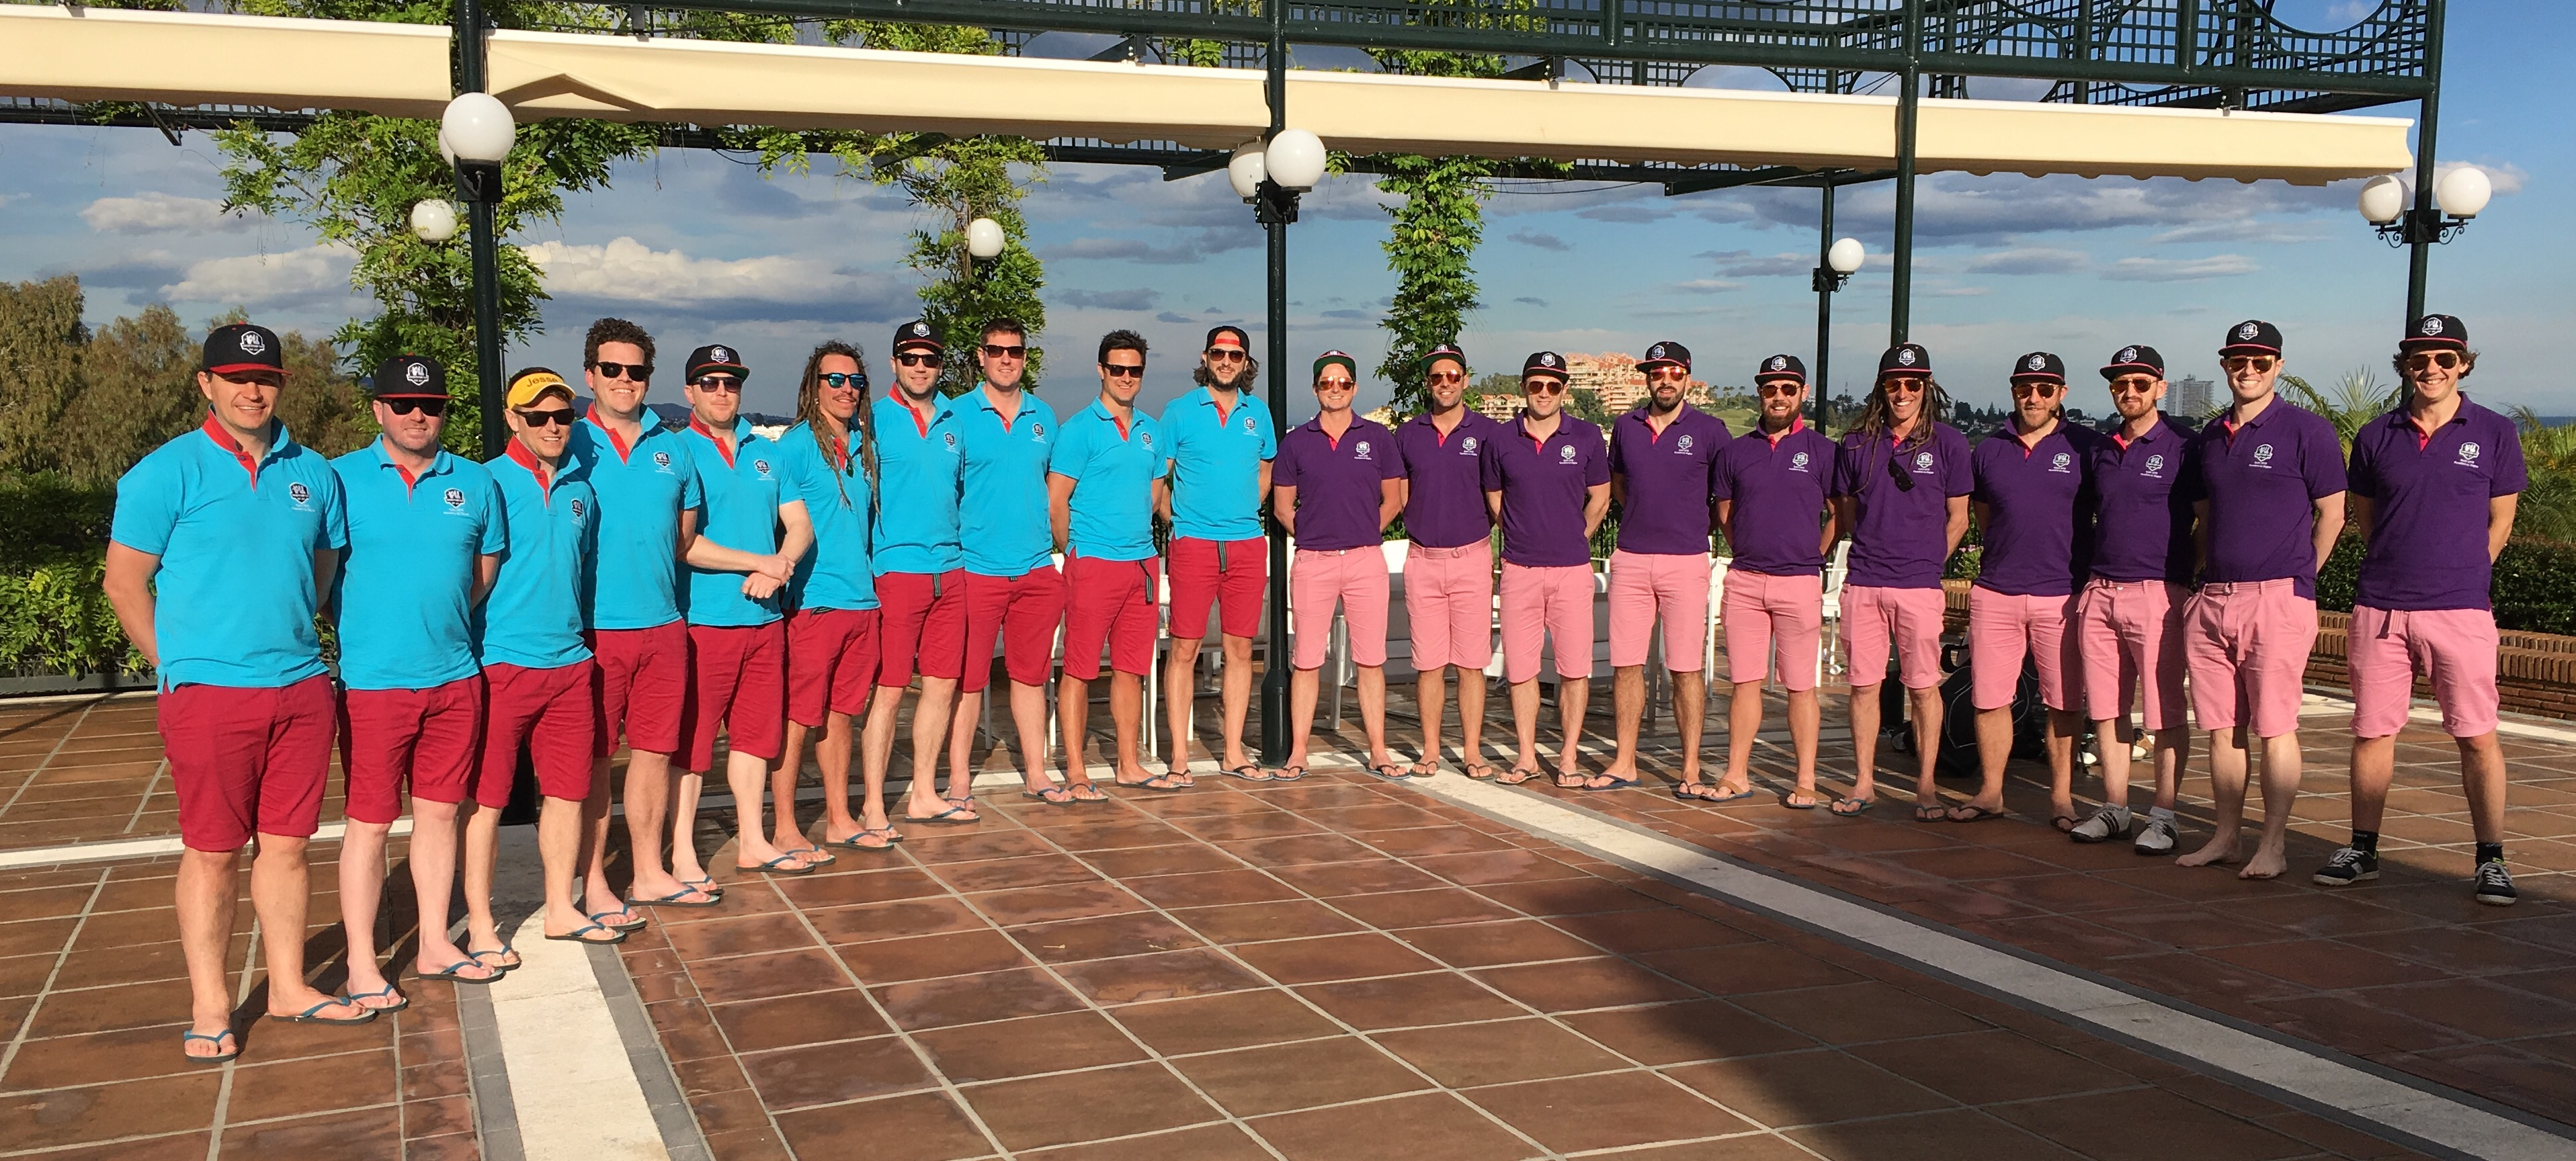 It seems like the competition for impressive team photographs to be includded in our rogues gallery is hotting up. Tim Prentice has kindly let us show this shot of the participants in the 6th Jesse Ryder Cup event at La Quinta in Marbella all ready and raring to go after a wholesome breakfast. It looks like the preparation included a foot massage for the teams with the exception one of the players who still had his golf shoes on from yesterday's round!  Great pic. Thanks for the order guys